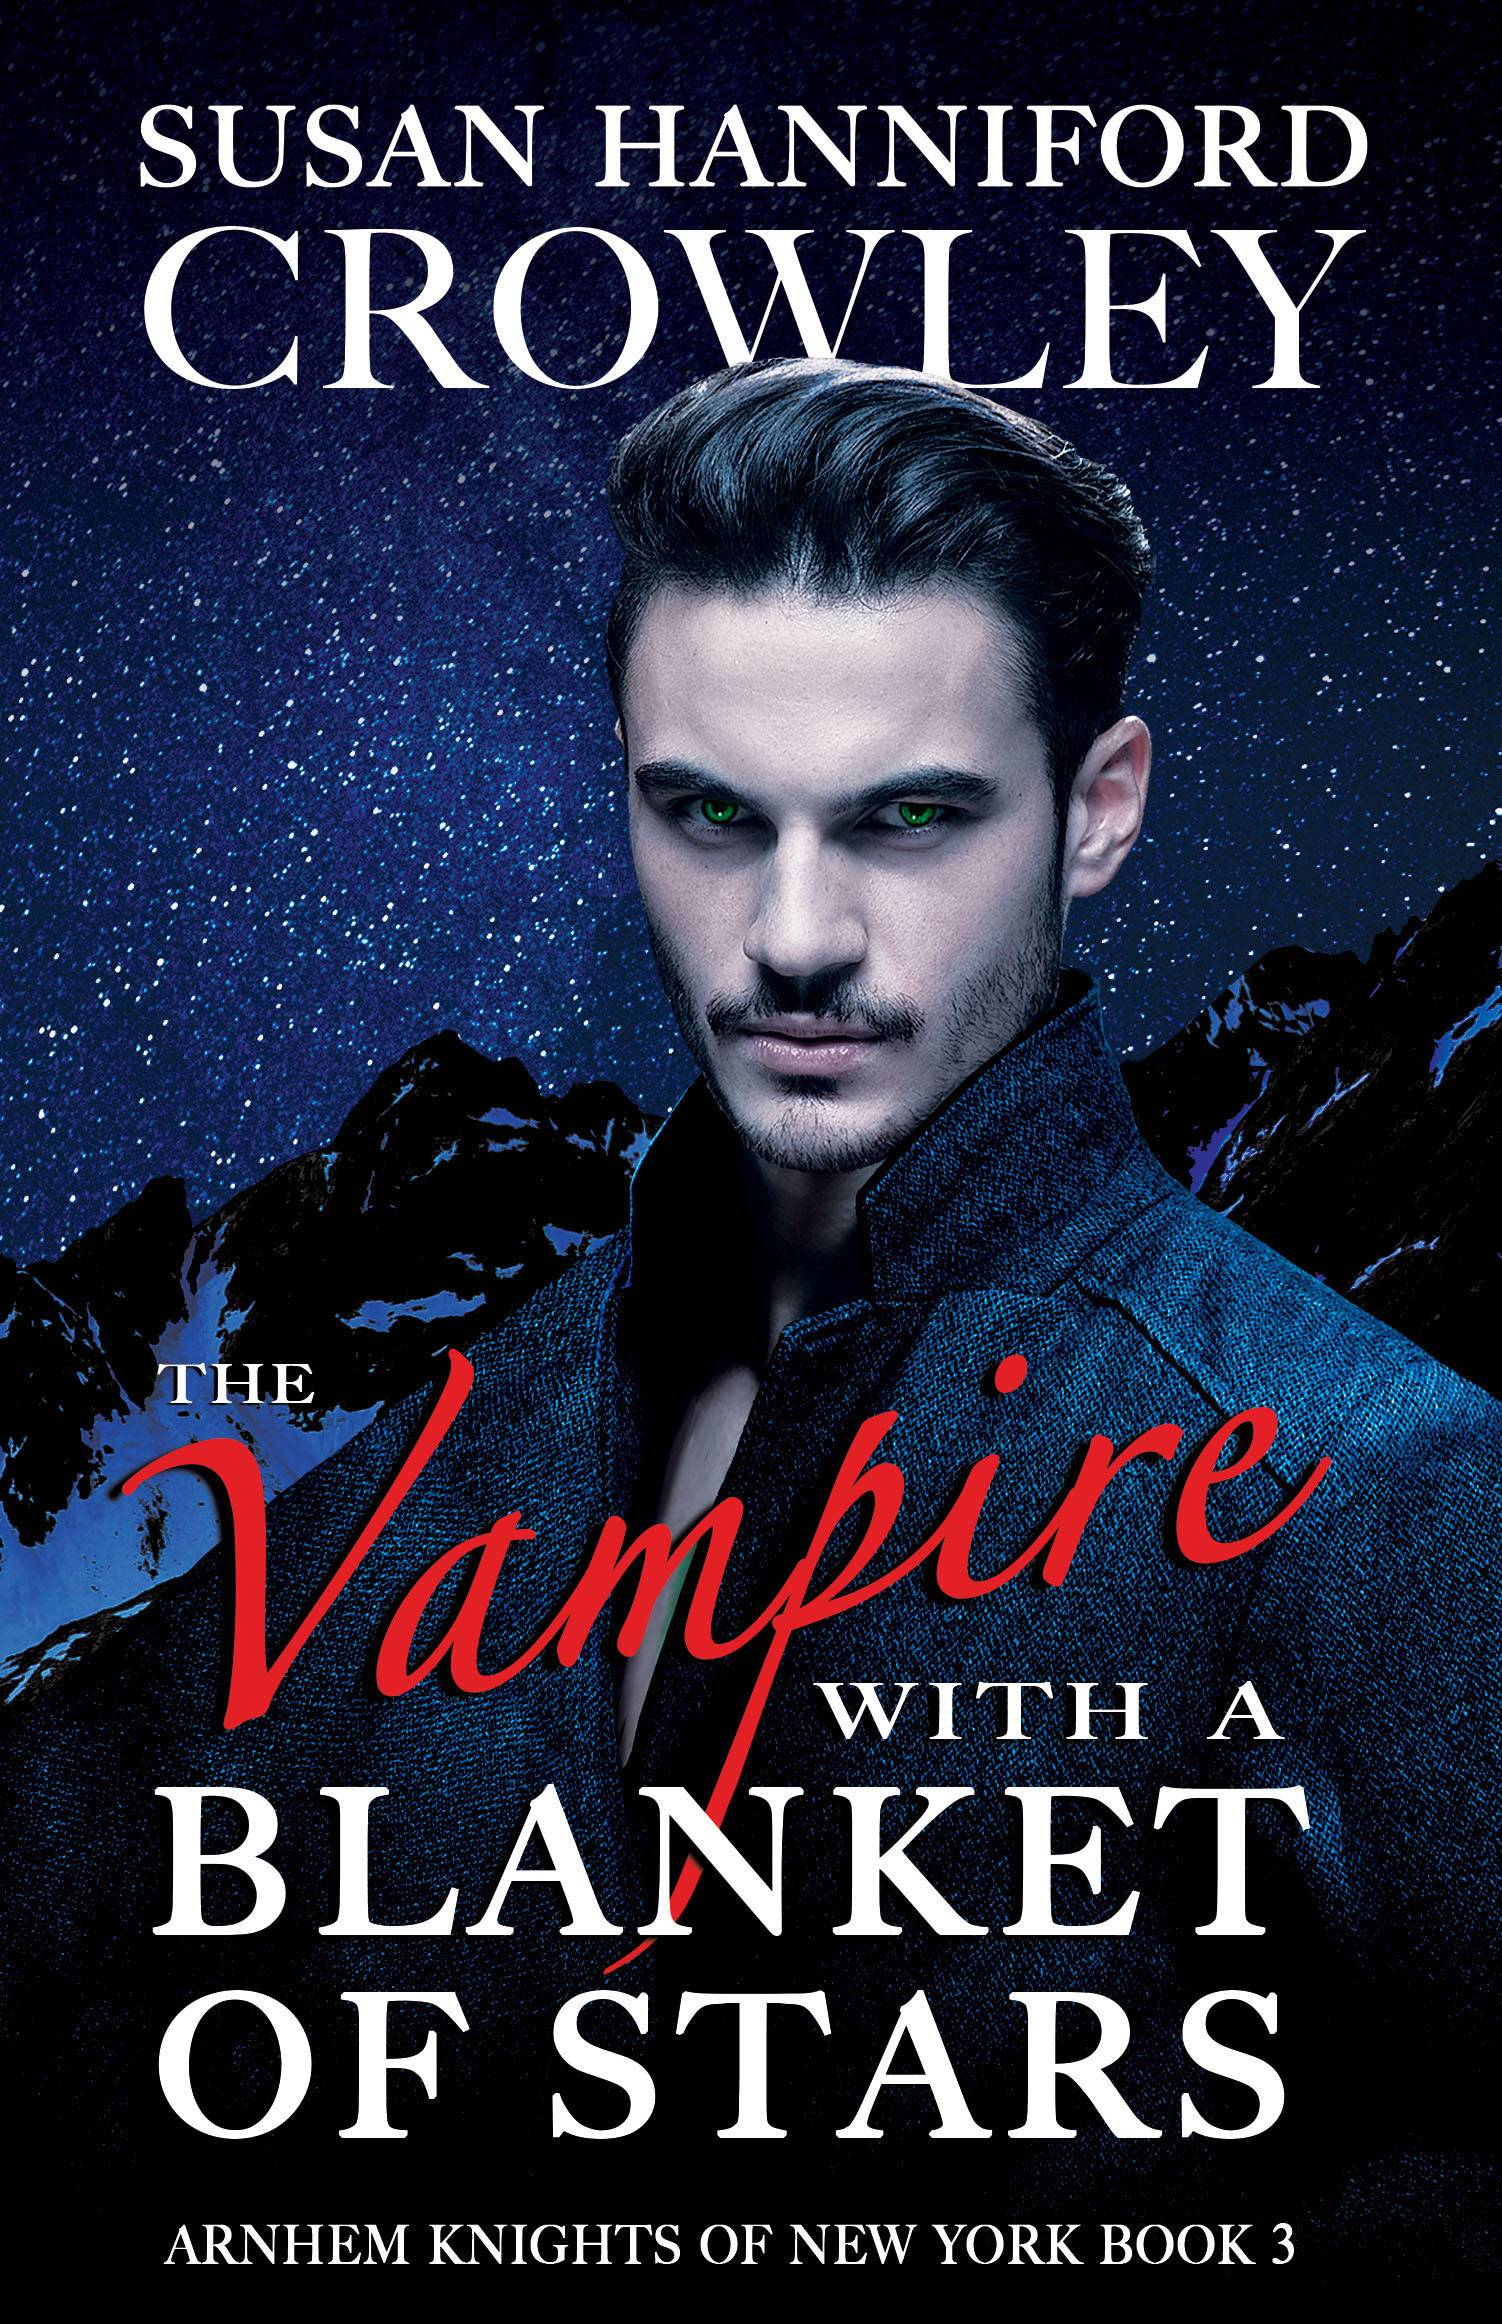 The Vampire with a Blanket of Stars